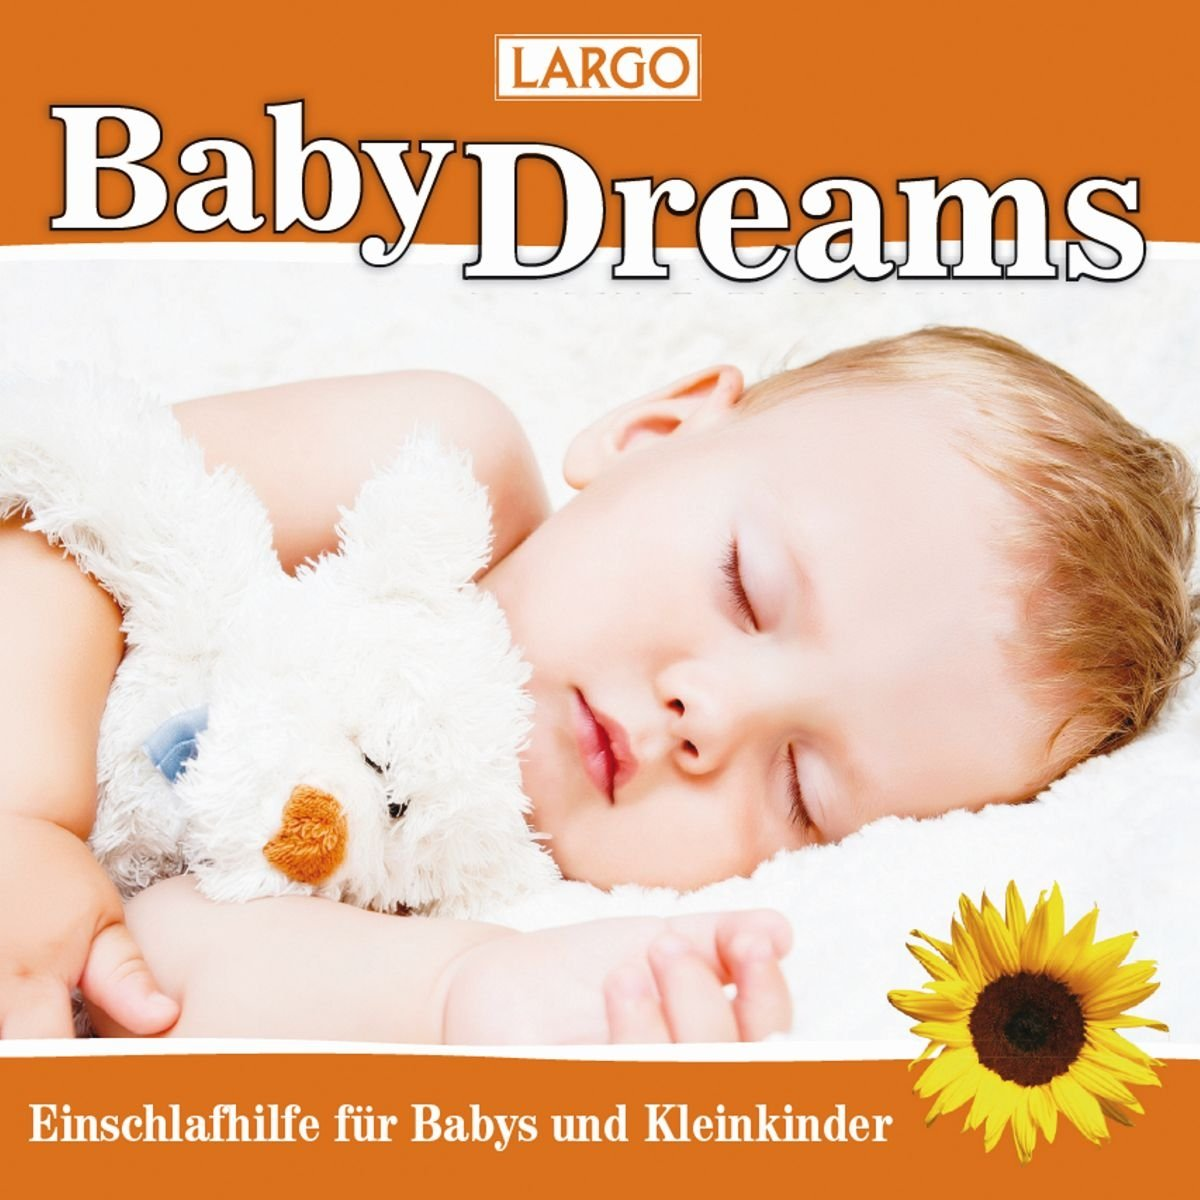 Shipping included Baby New product type Dreams